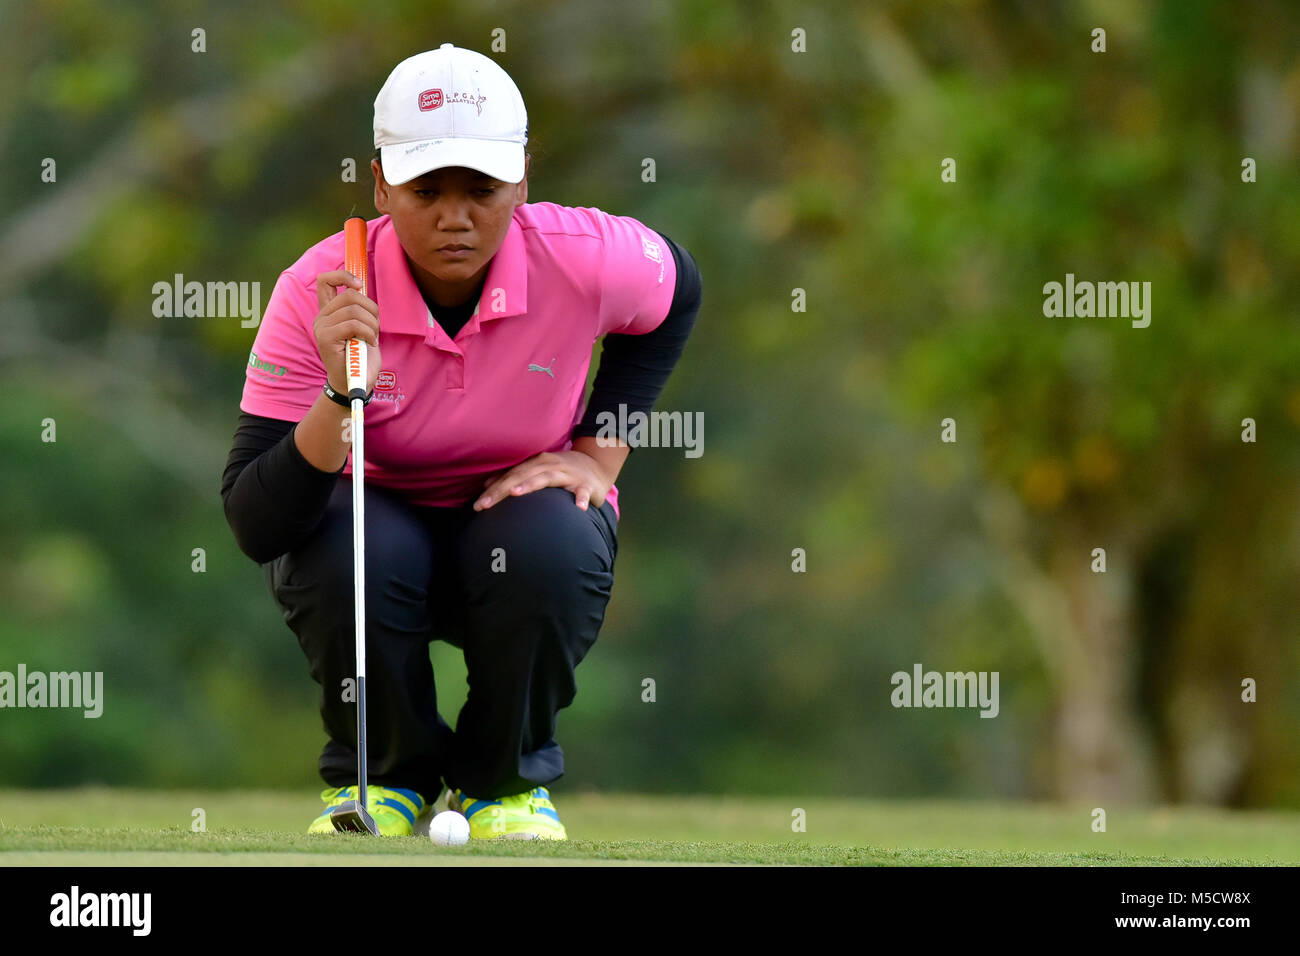 Danau, UKM Bangi - FEBRUARY 10: Zarith Sofea lines up a putt on the 11th green during Round One of the Danau Junior - Stock Image